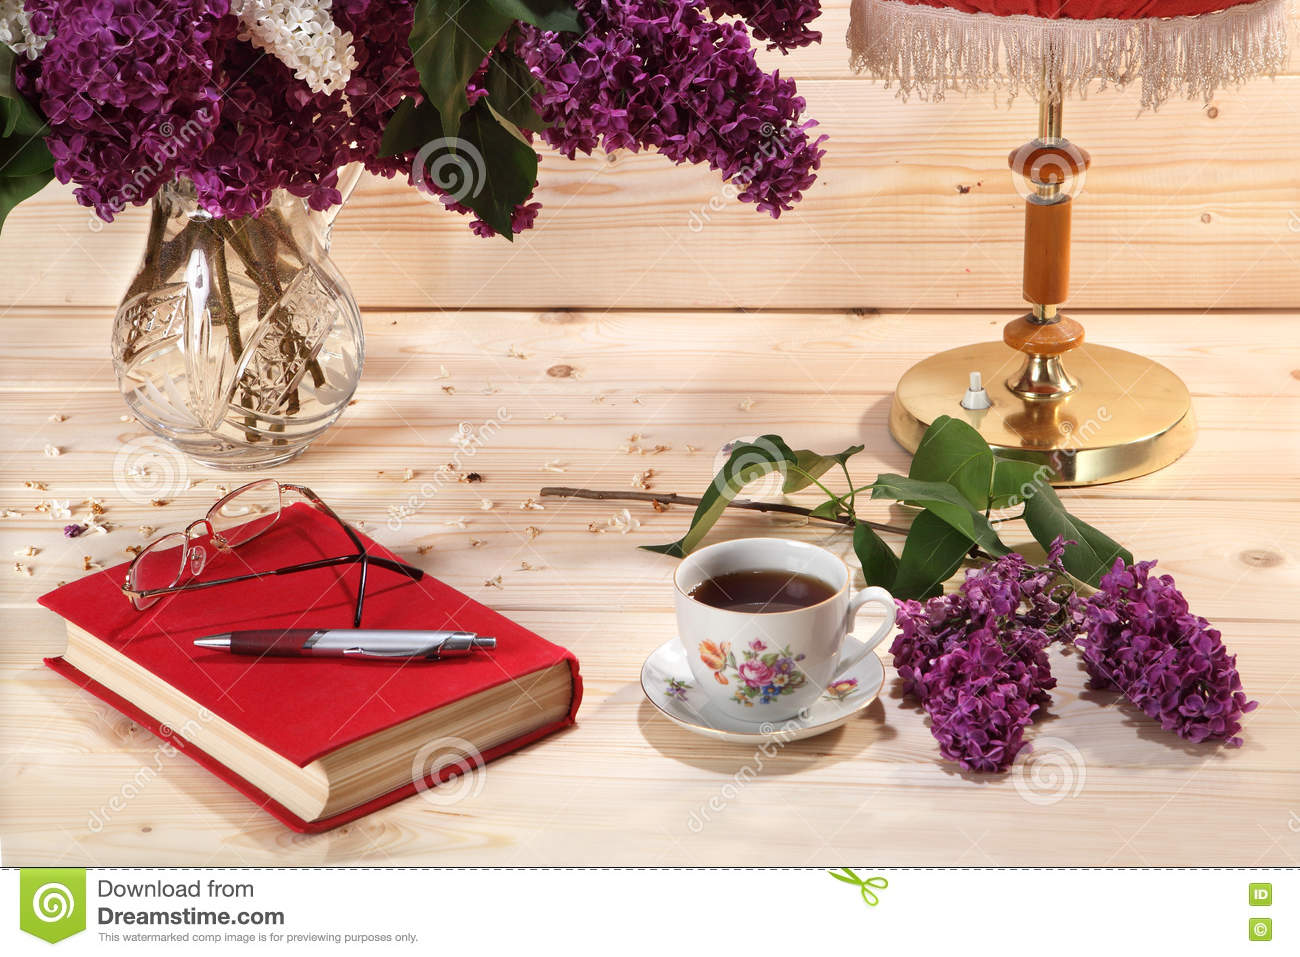 Bouquet of lilacs book spectacles cup of tea and table lamp bouquet of lilacs book spectacles cup of tea and table lamp geotapseo Image collections